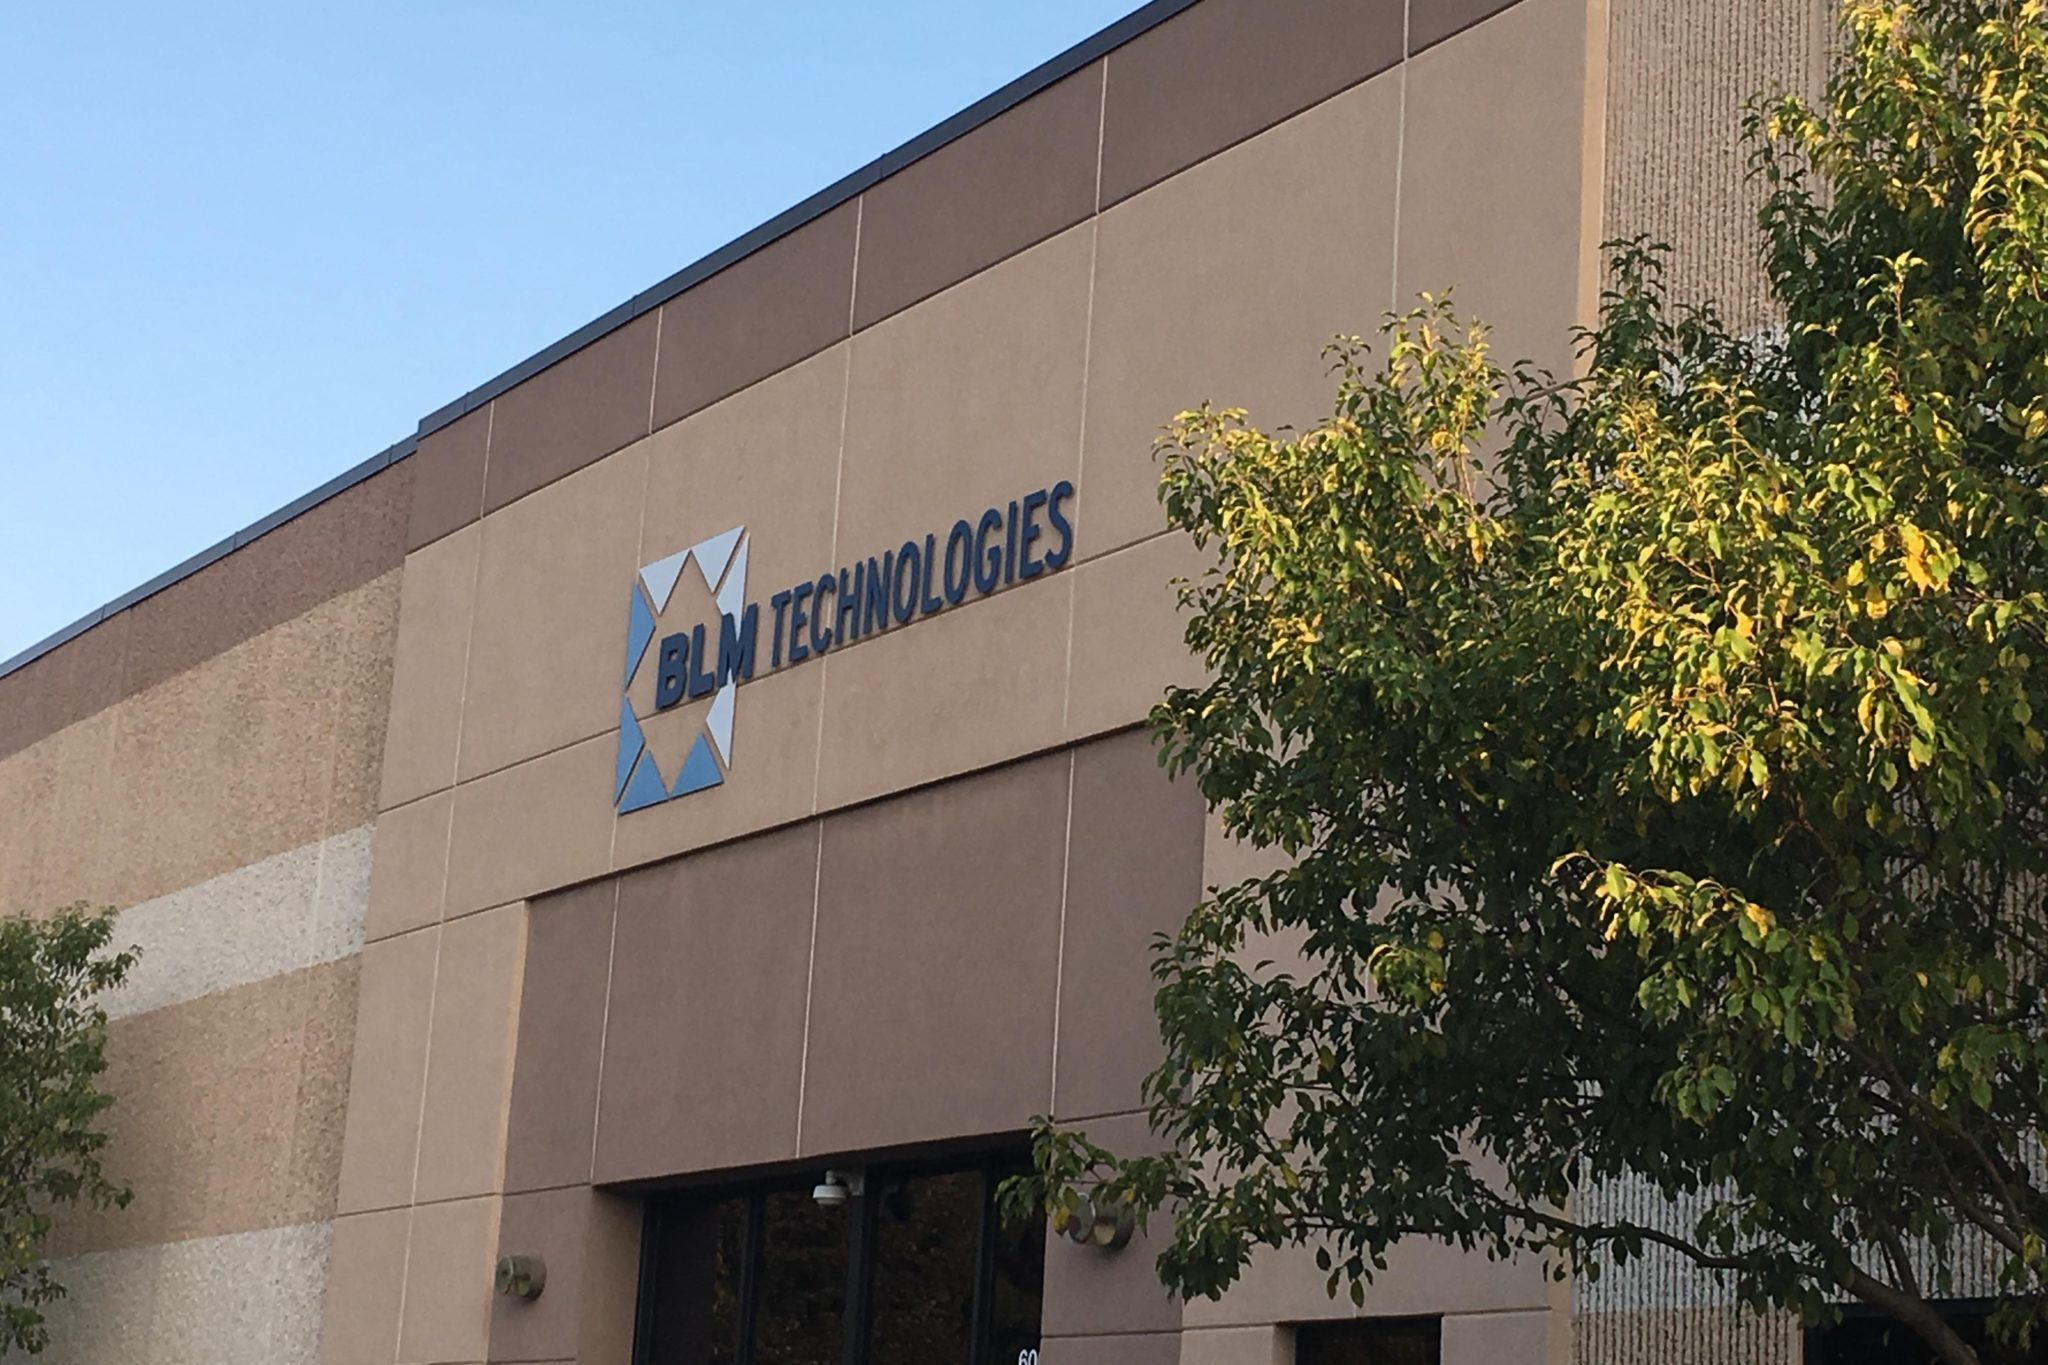 BLM Technologies headquarters